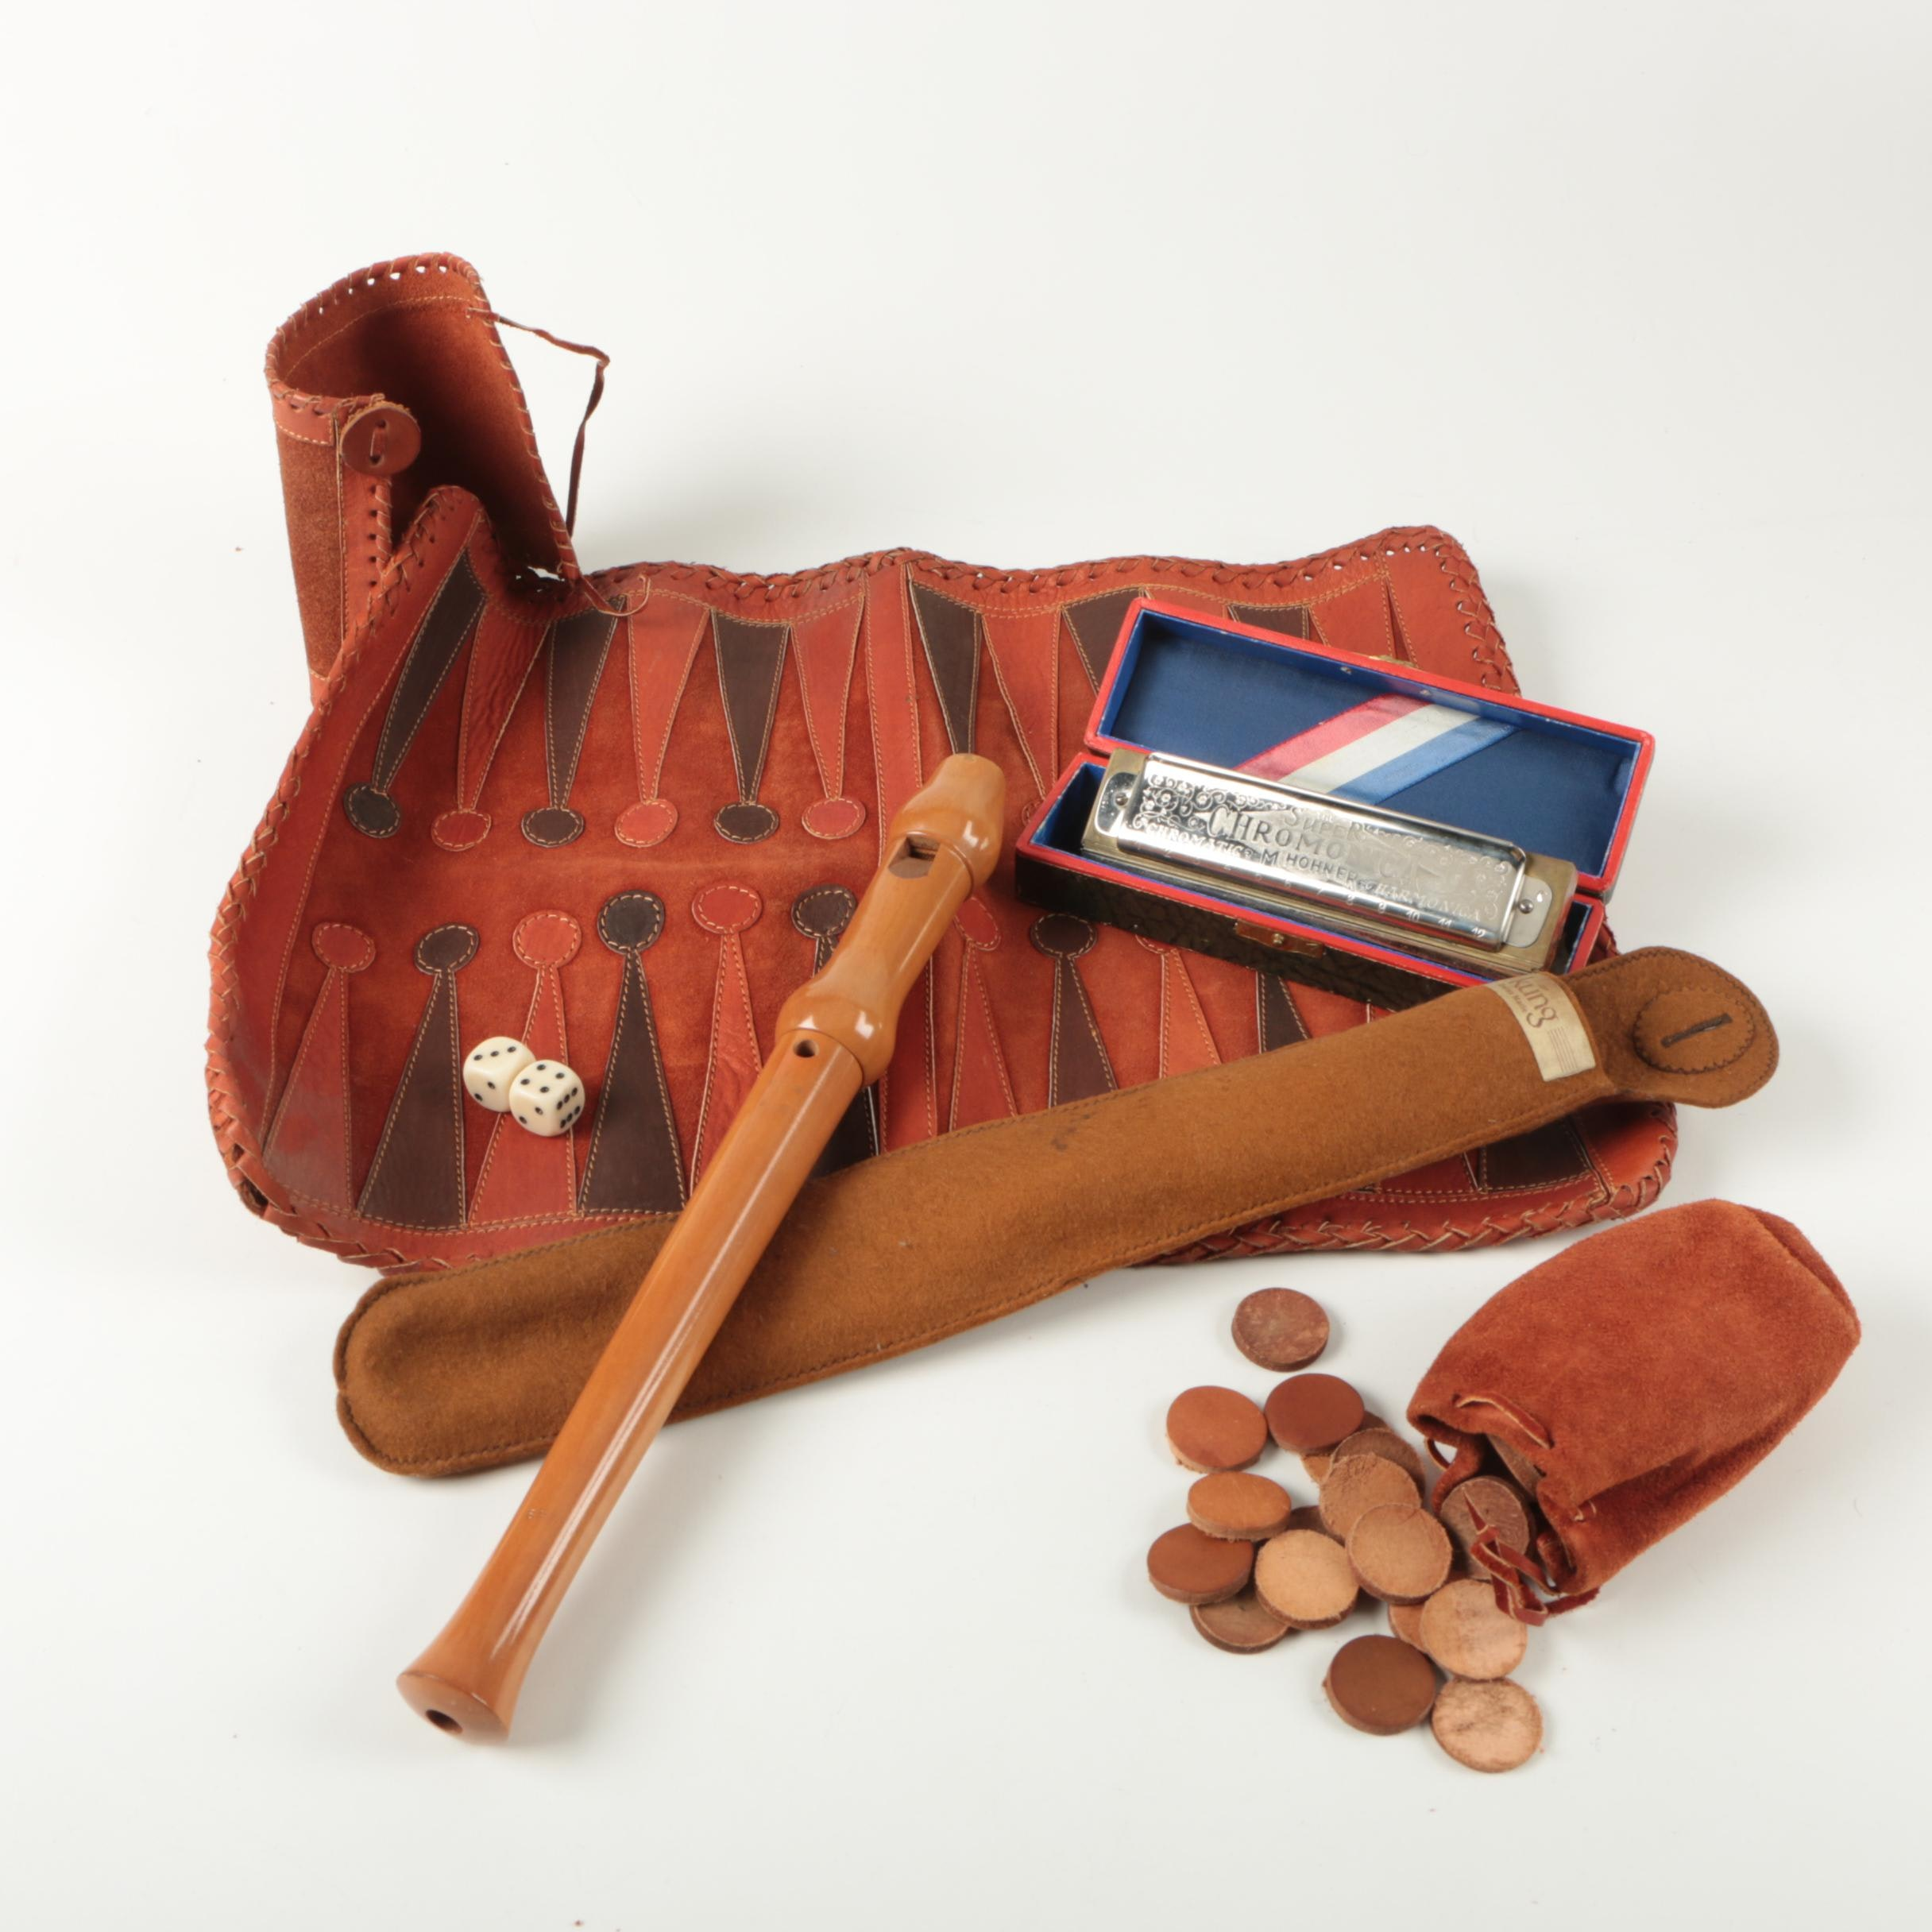 Vintage Wooden Recorder, Hohner Harmonica, and Leather Travel Backgammon Set